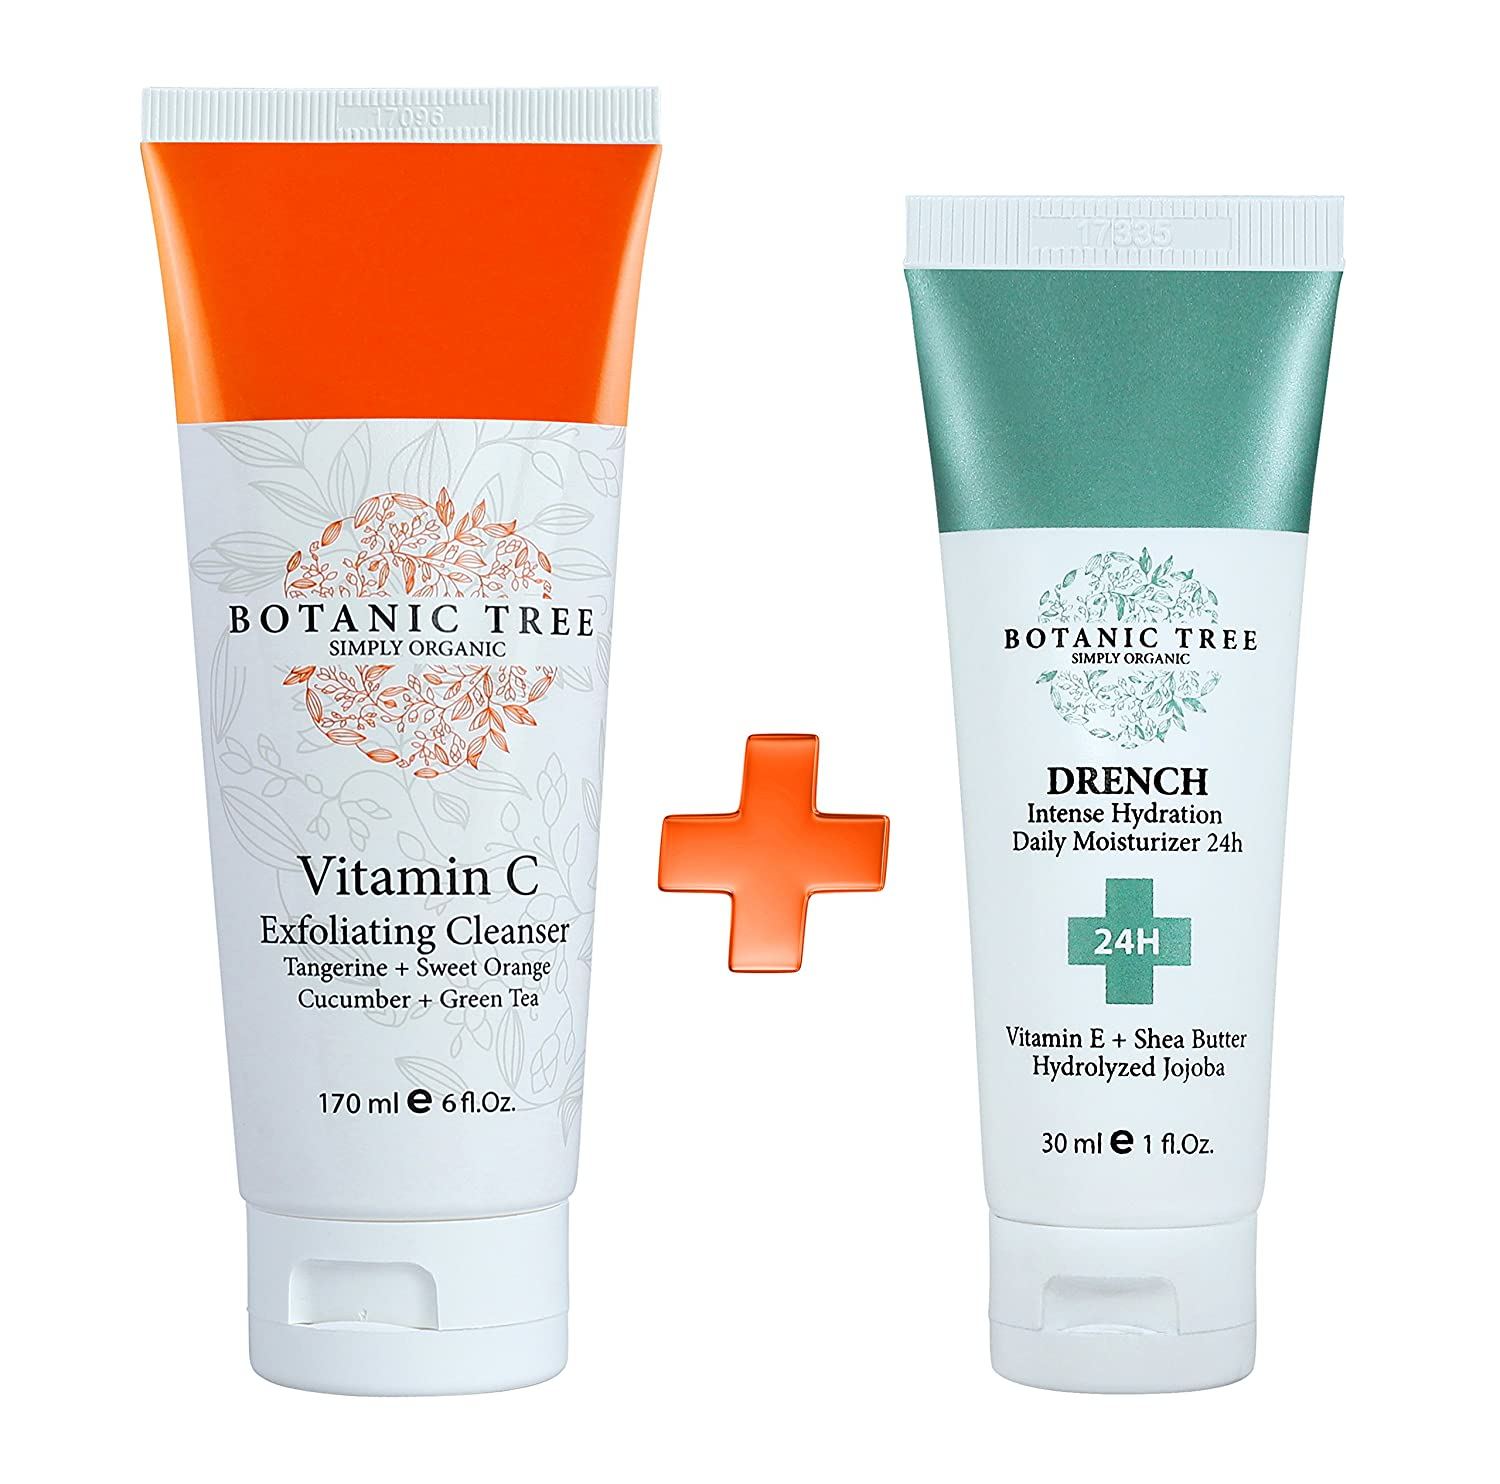 Vitamin C Exfoliating Cleanser 6 Oz w/10% of Vitamin C- Anti Aging Face Wash+Drench Intense Hydration 24Hrs(Pack of 2)- Reduction For Wrinkles and Lines -Green Tea,Cucumber,Tangerine and Sweet Orange.